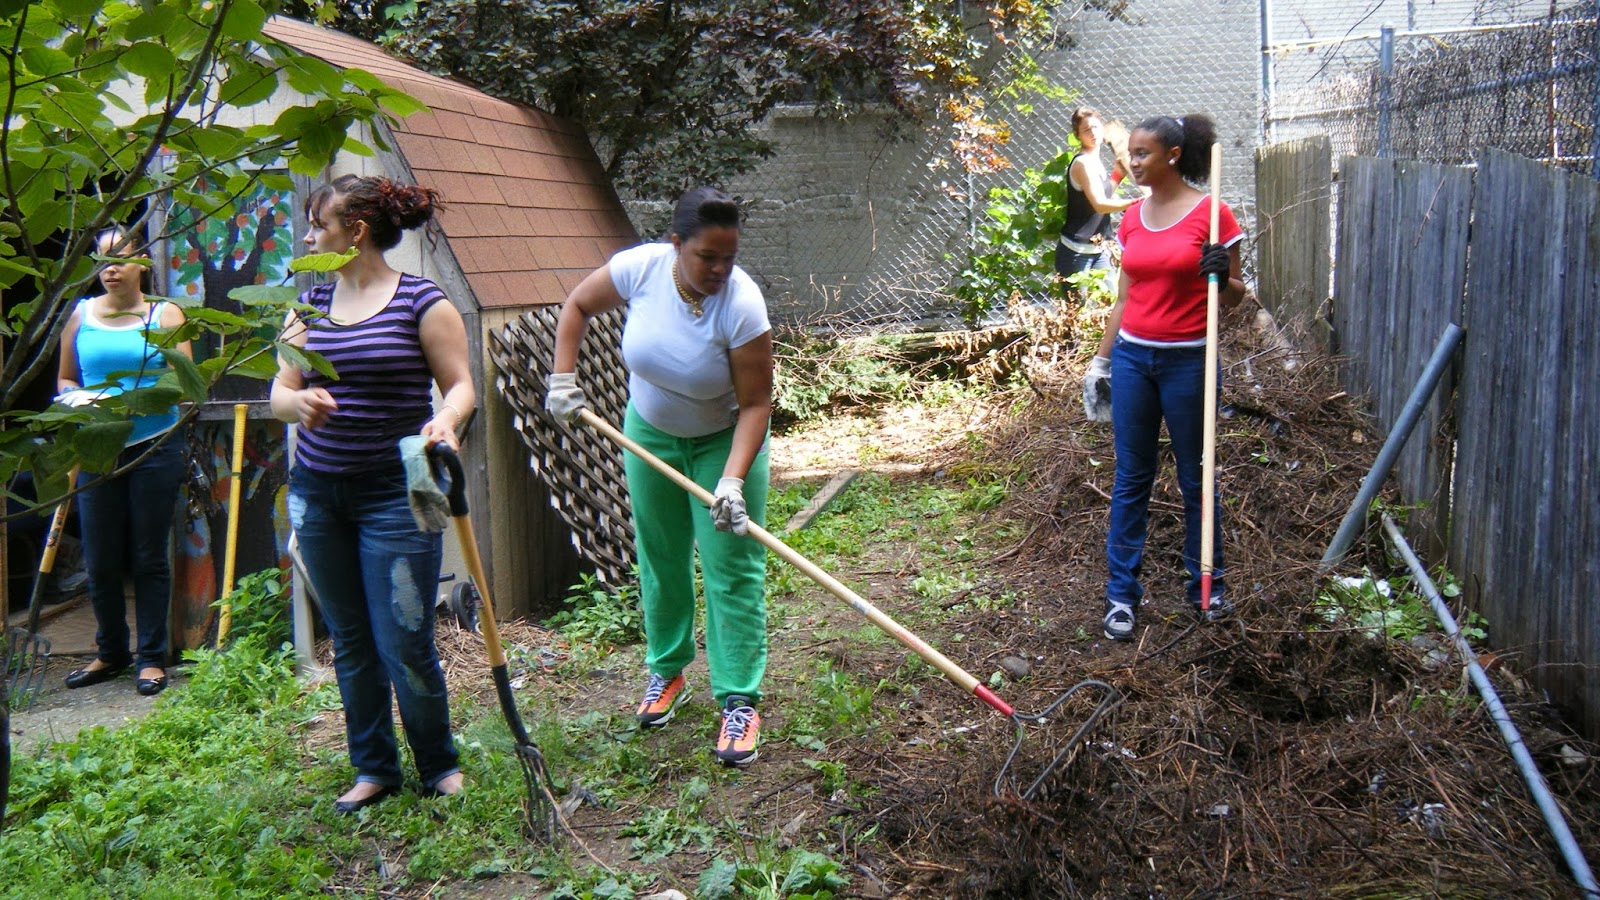 commmunity gardening: Why Should I Join a Community Garden?